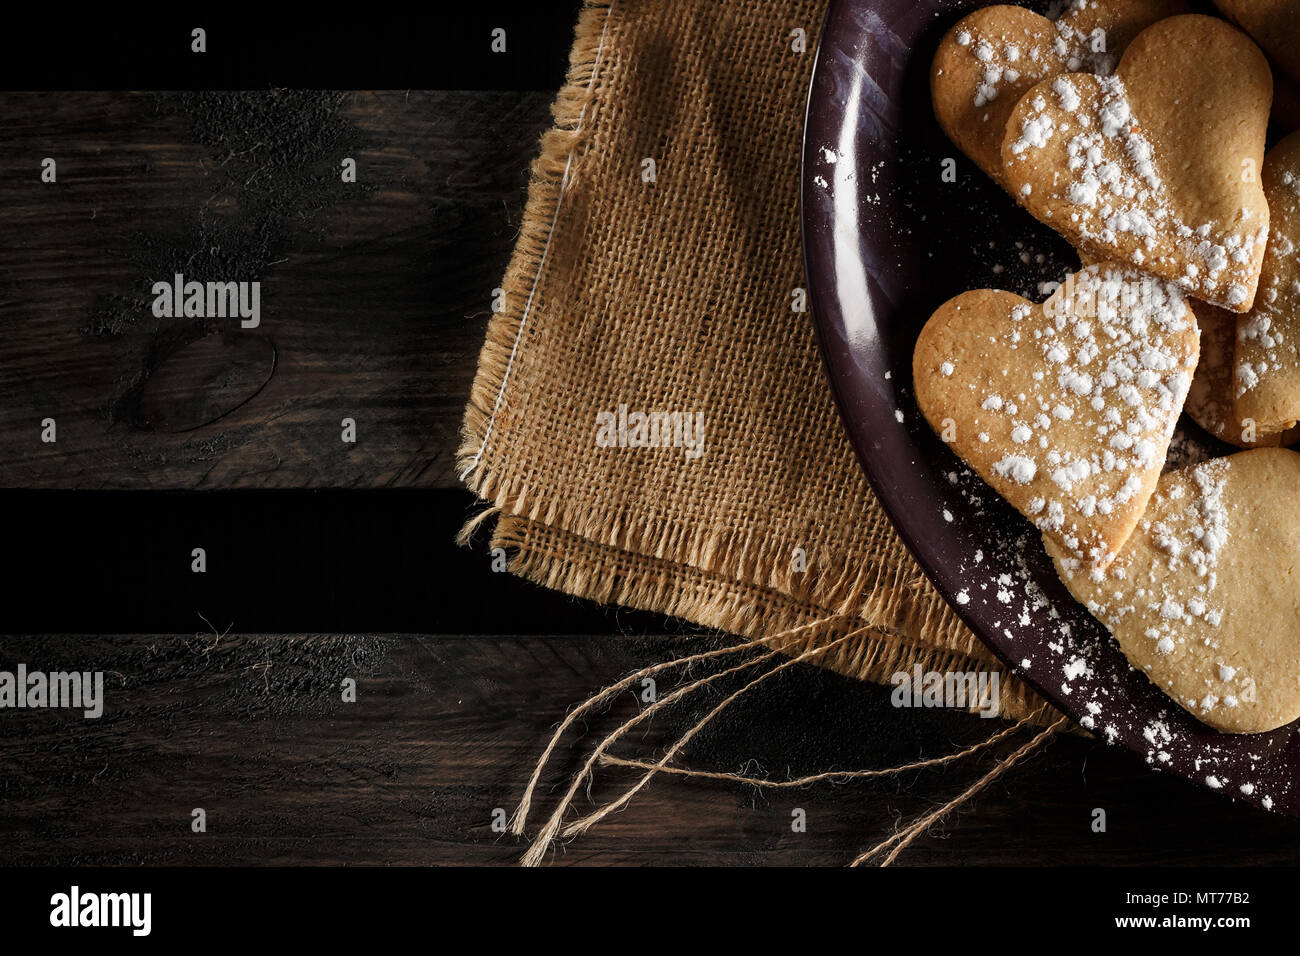 Delicious home-made heart-shaped cookies sprinkled with icing sugar on sackcloth and wooden boards. Horizontal image seen from above. - Stock Image